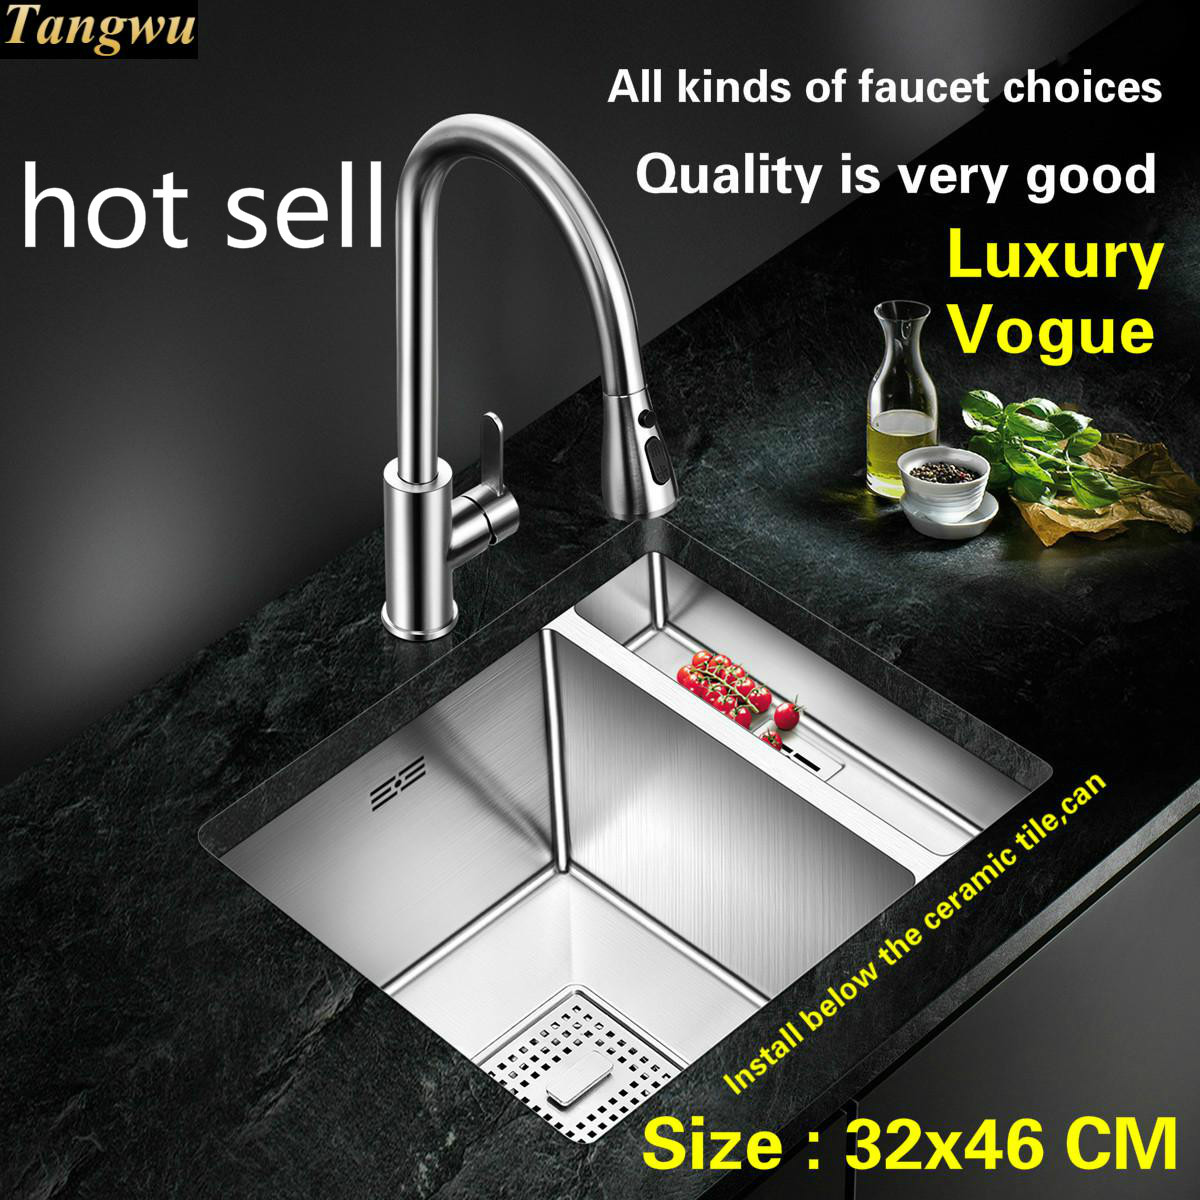 Fashionable Standard Luxurious Mini Balcony Kitchen Manual Sink Single Trough High-grade Food Grade 304 Stainless Steel 32x46 CM